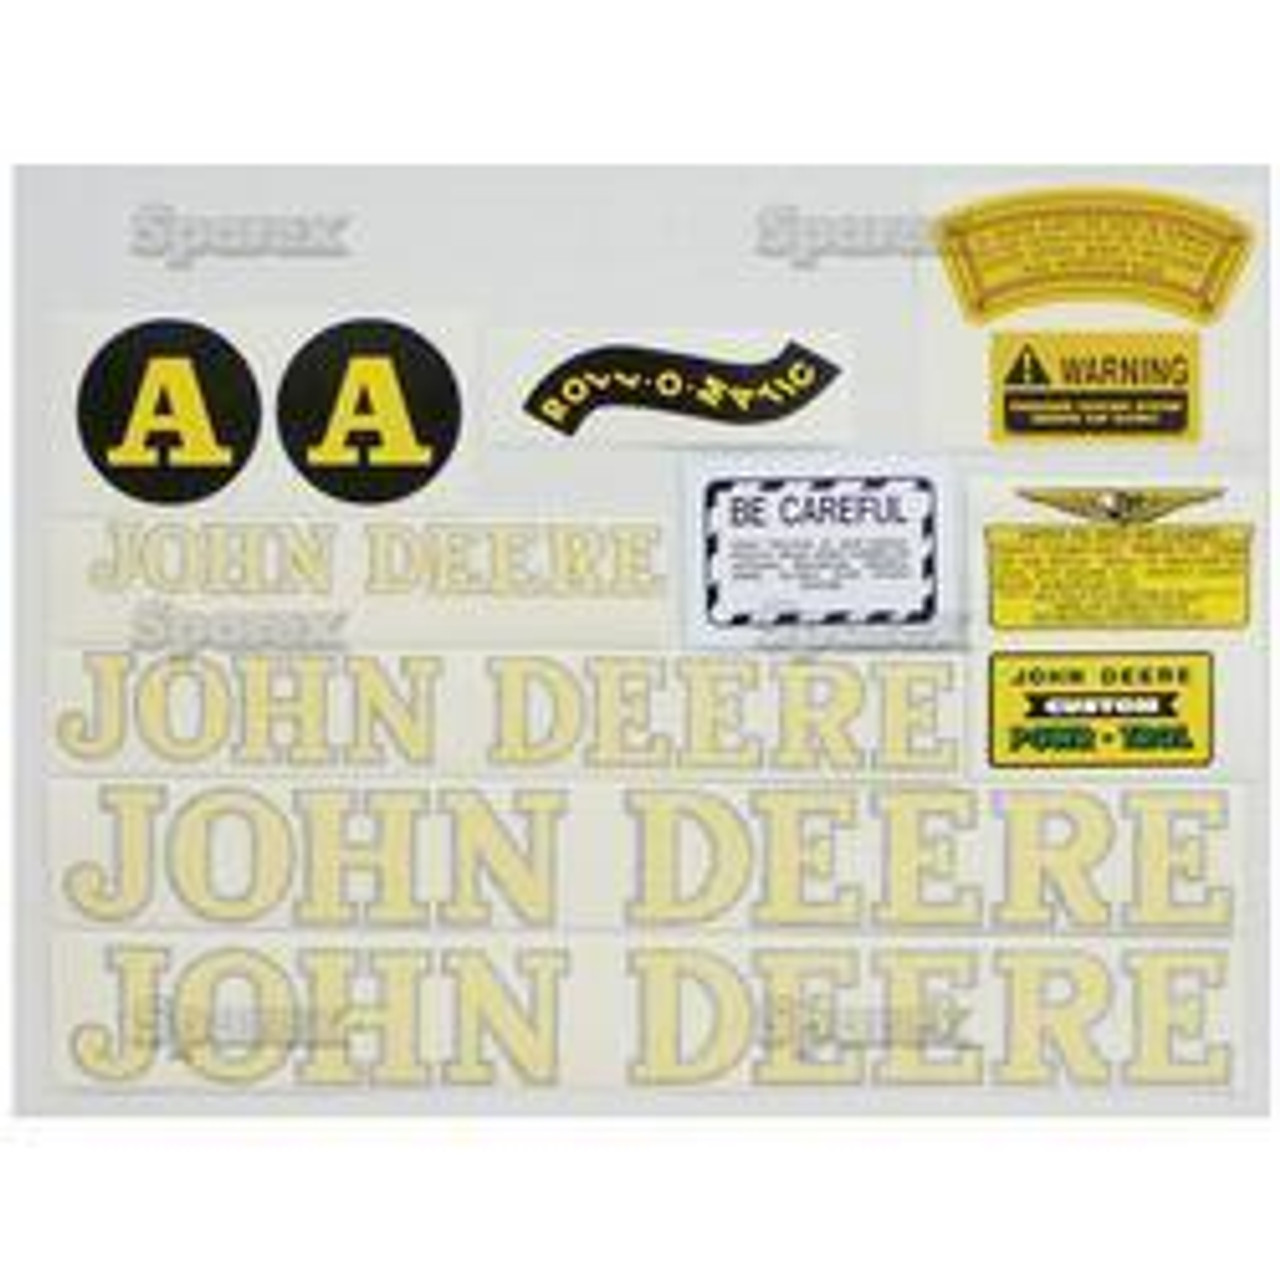 New JD A (Black) Decal Set